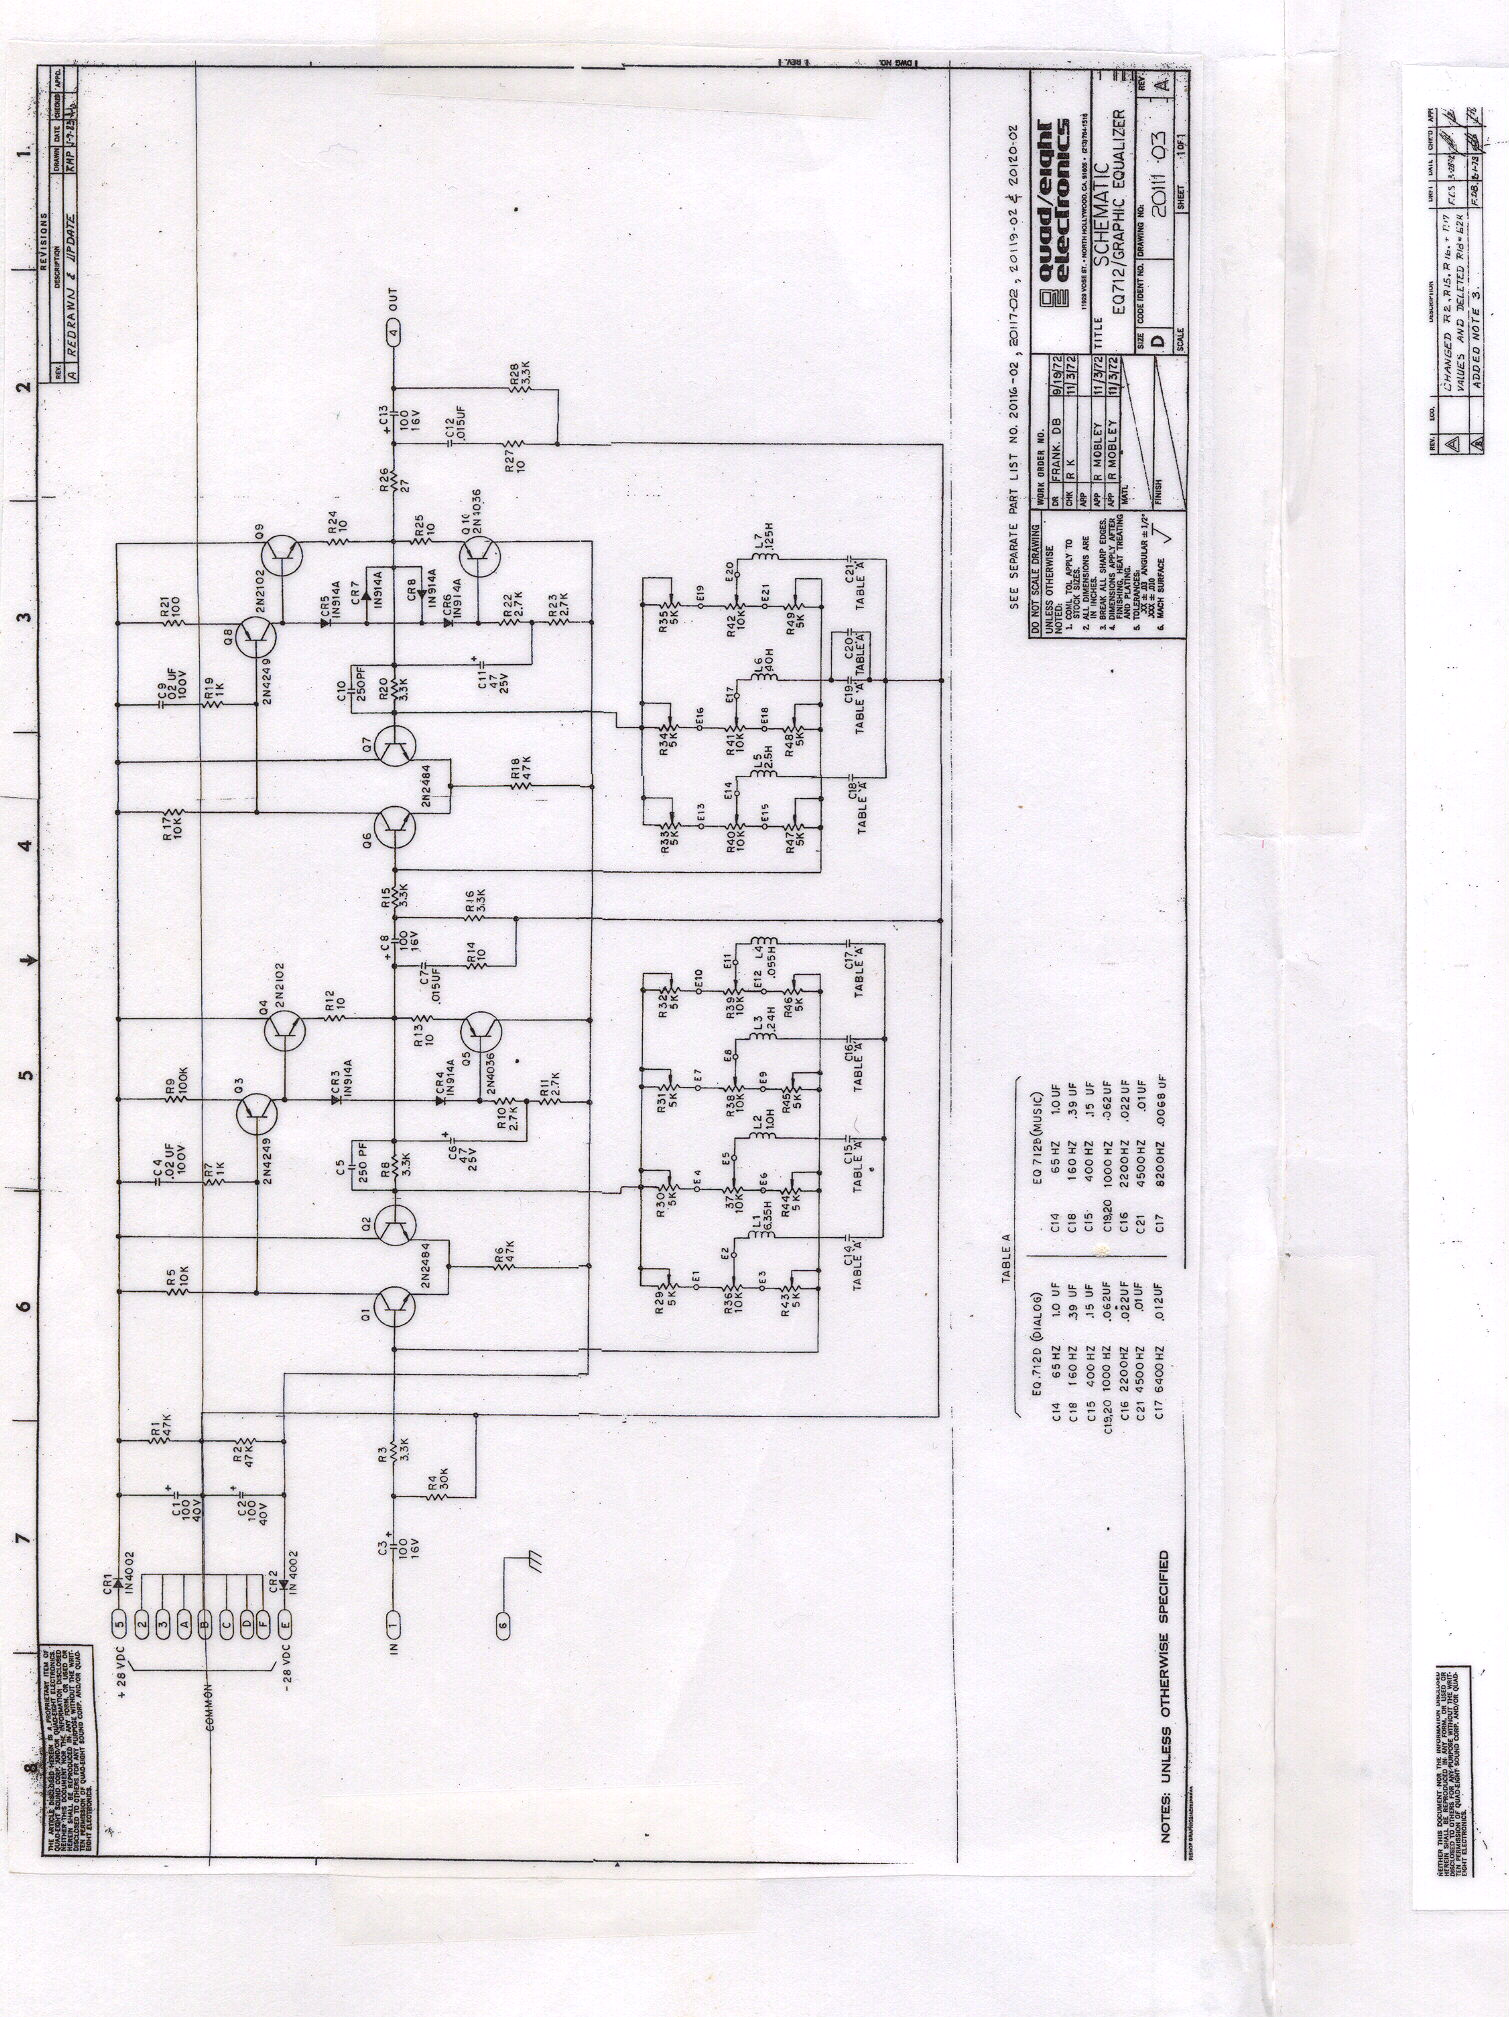 Schematics Schematic Image on electronic design automation, technical drawing, schematic capture, data flow diagram, block diagram, piping and instrumentation diagram, control flow diagram, circuit diagram, diagramming software, straight-line diagram, cross section, functional flow block diagram, tube map, ladder logic, function block diagram, one-line diagram,